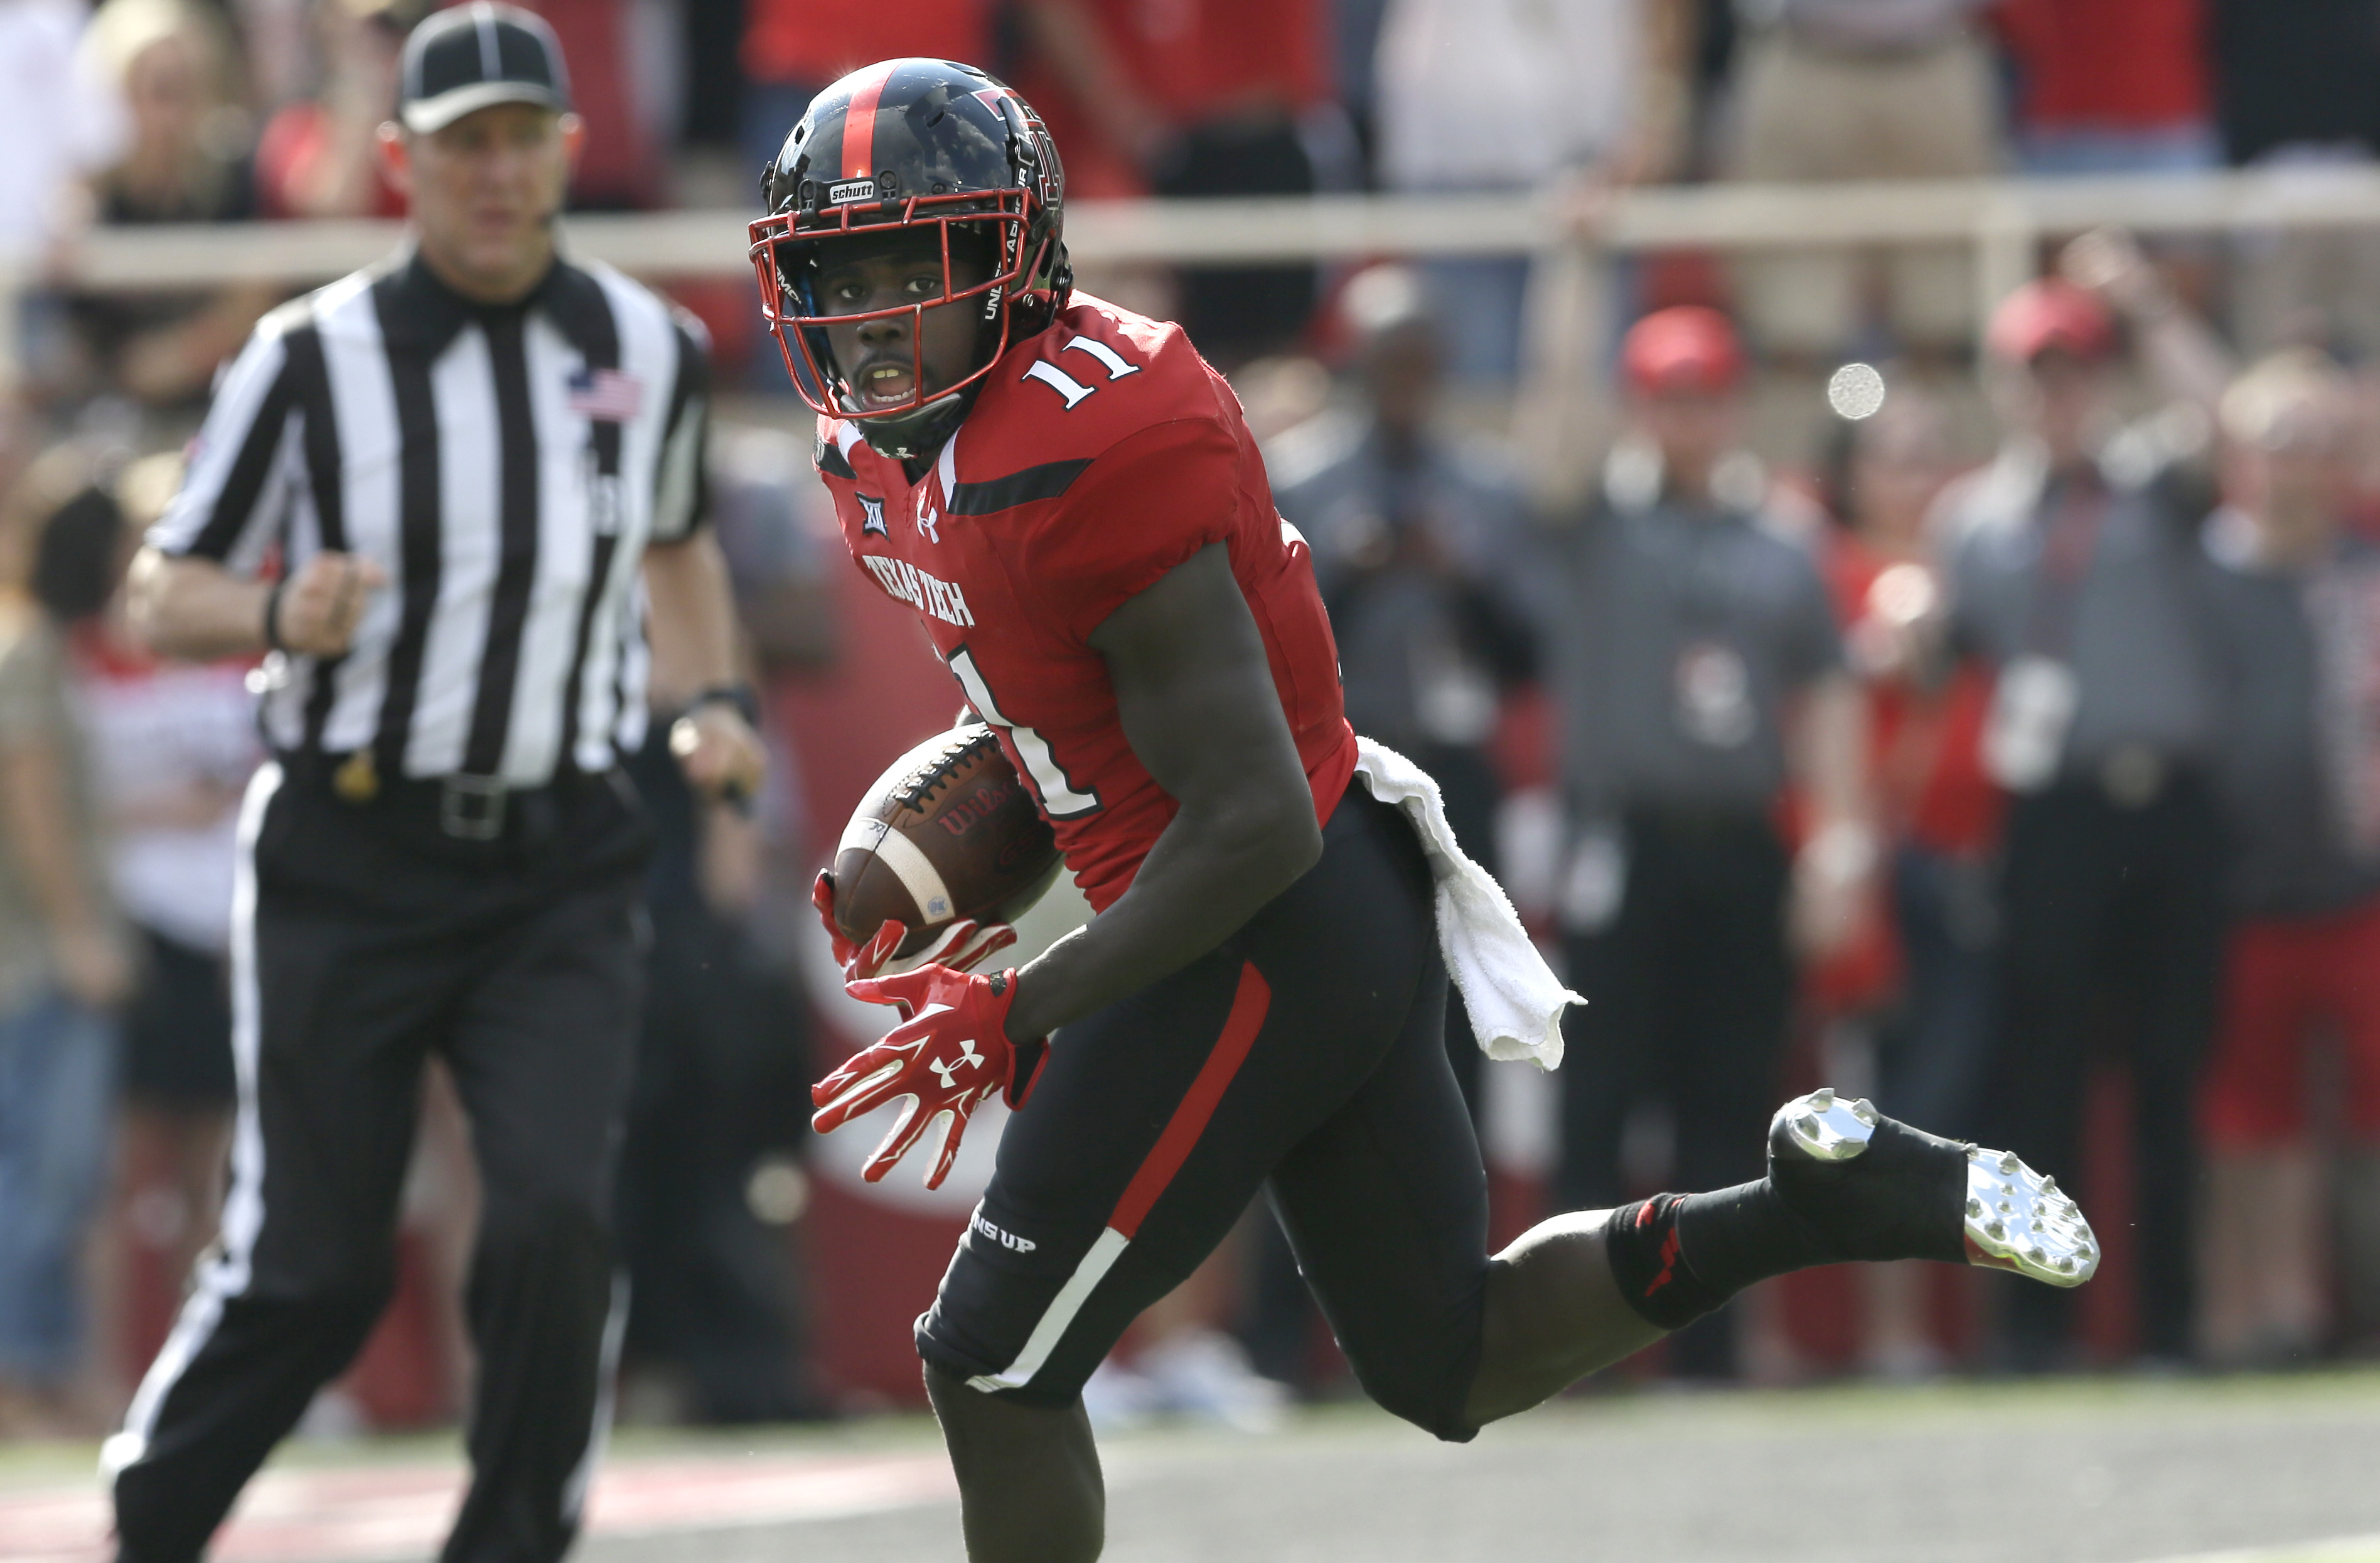 FILE - In this Sept. 26, 2015, file photo, Texas Tech wide receiver Jakeem Grant (11) runs in for a touchdown after a reception in the first half of an NCAA college football game against TCU in Lubbock, Texas. Baylor, West Virginia, Texas Tech and TCU all